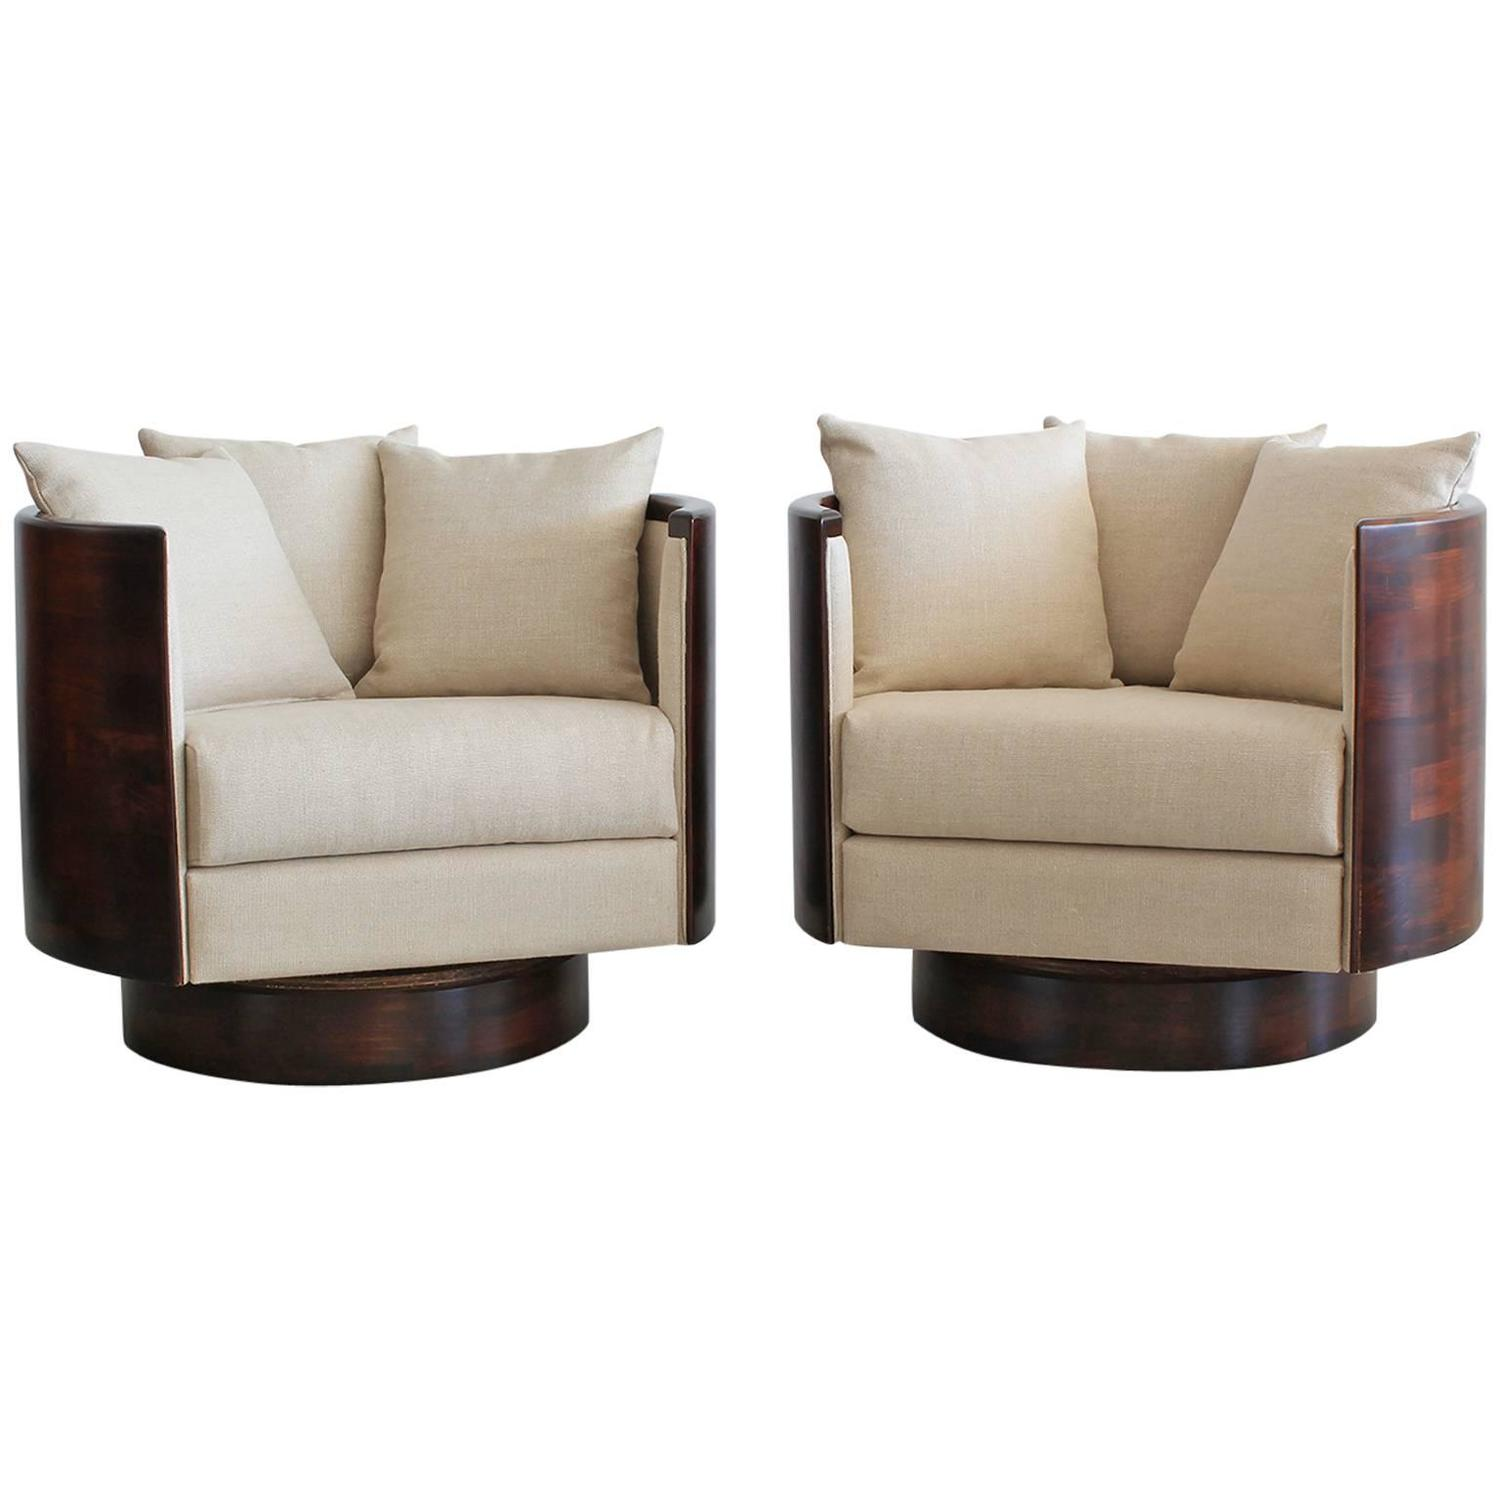 Barrel Swivel Chair Barrel Back Swivel Chair For Sale At 1stdibs